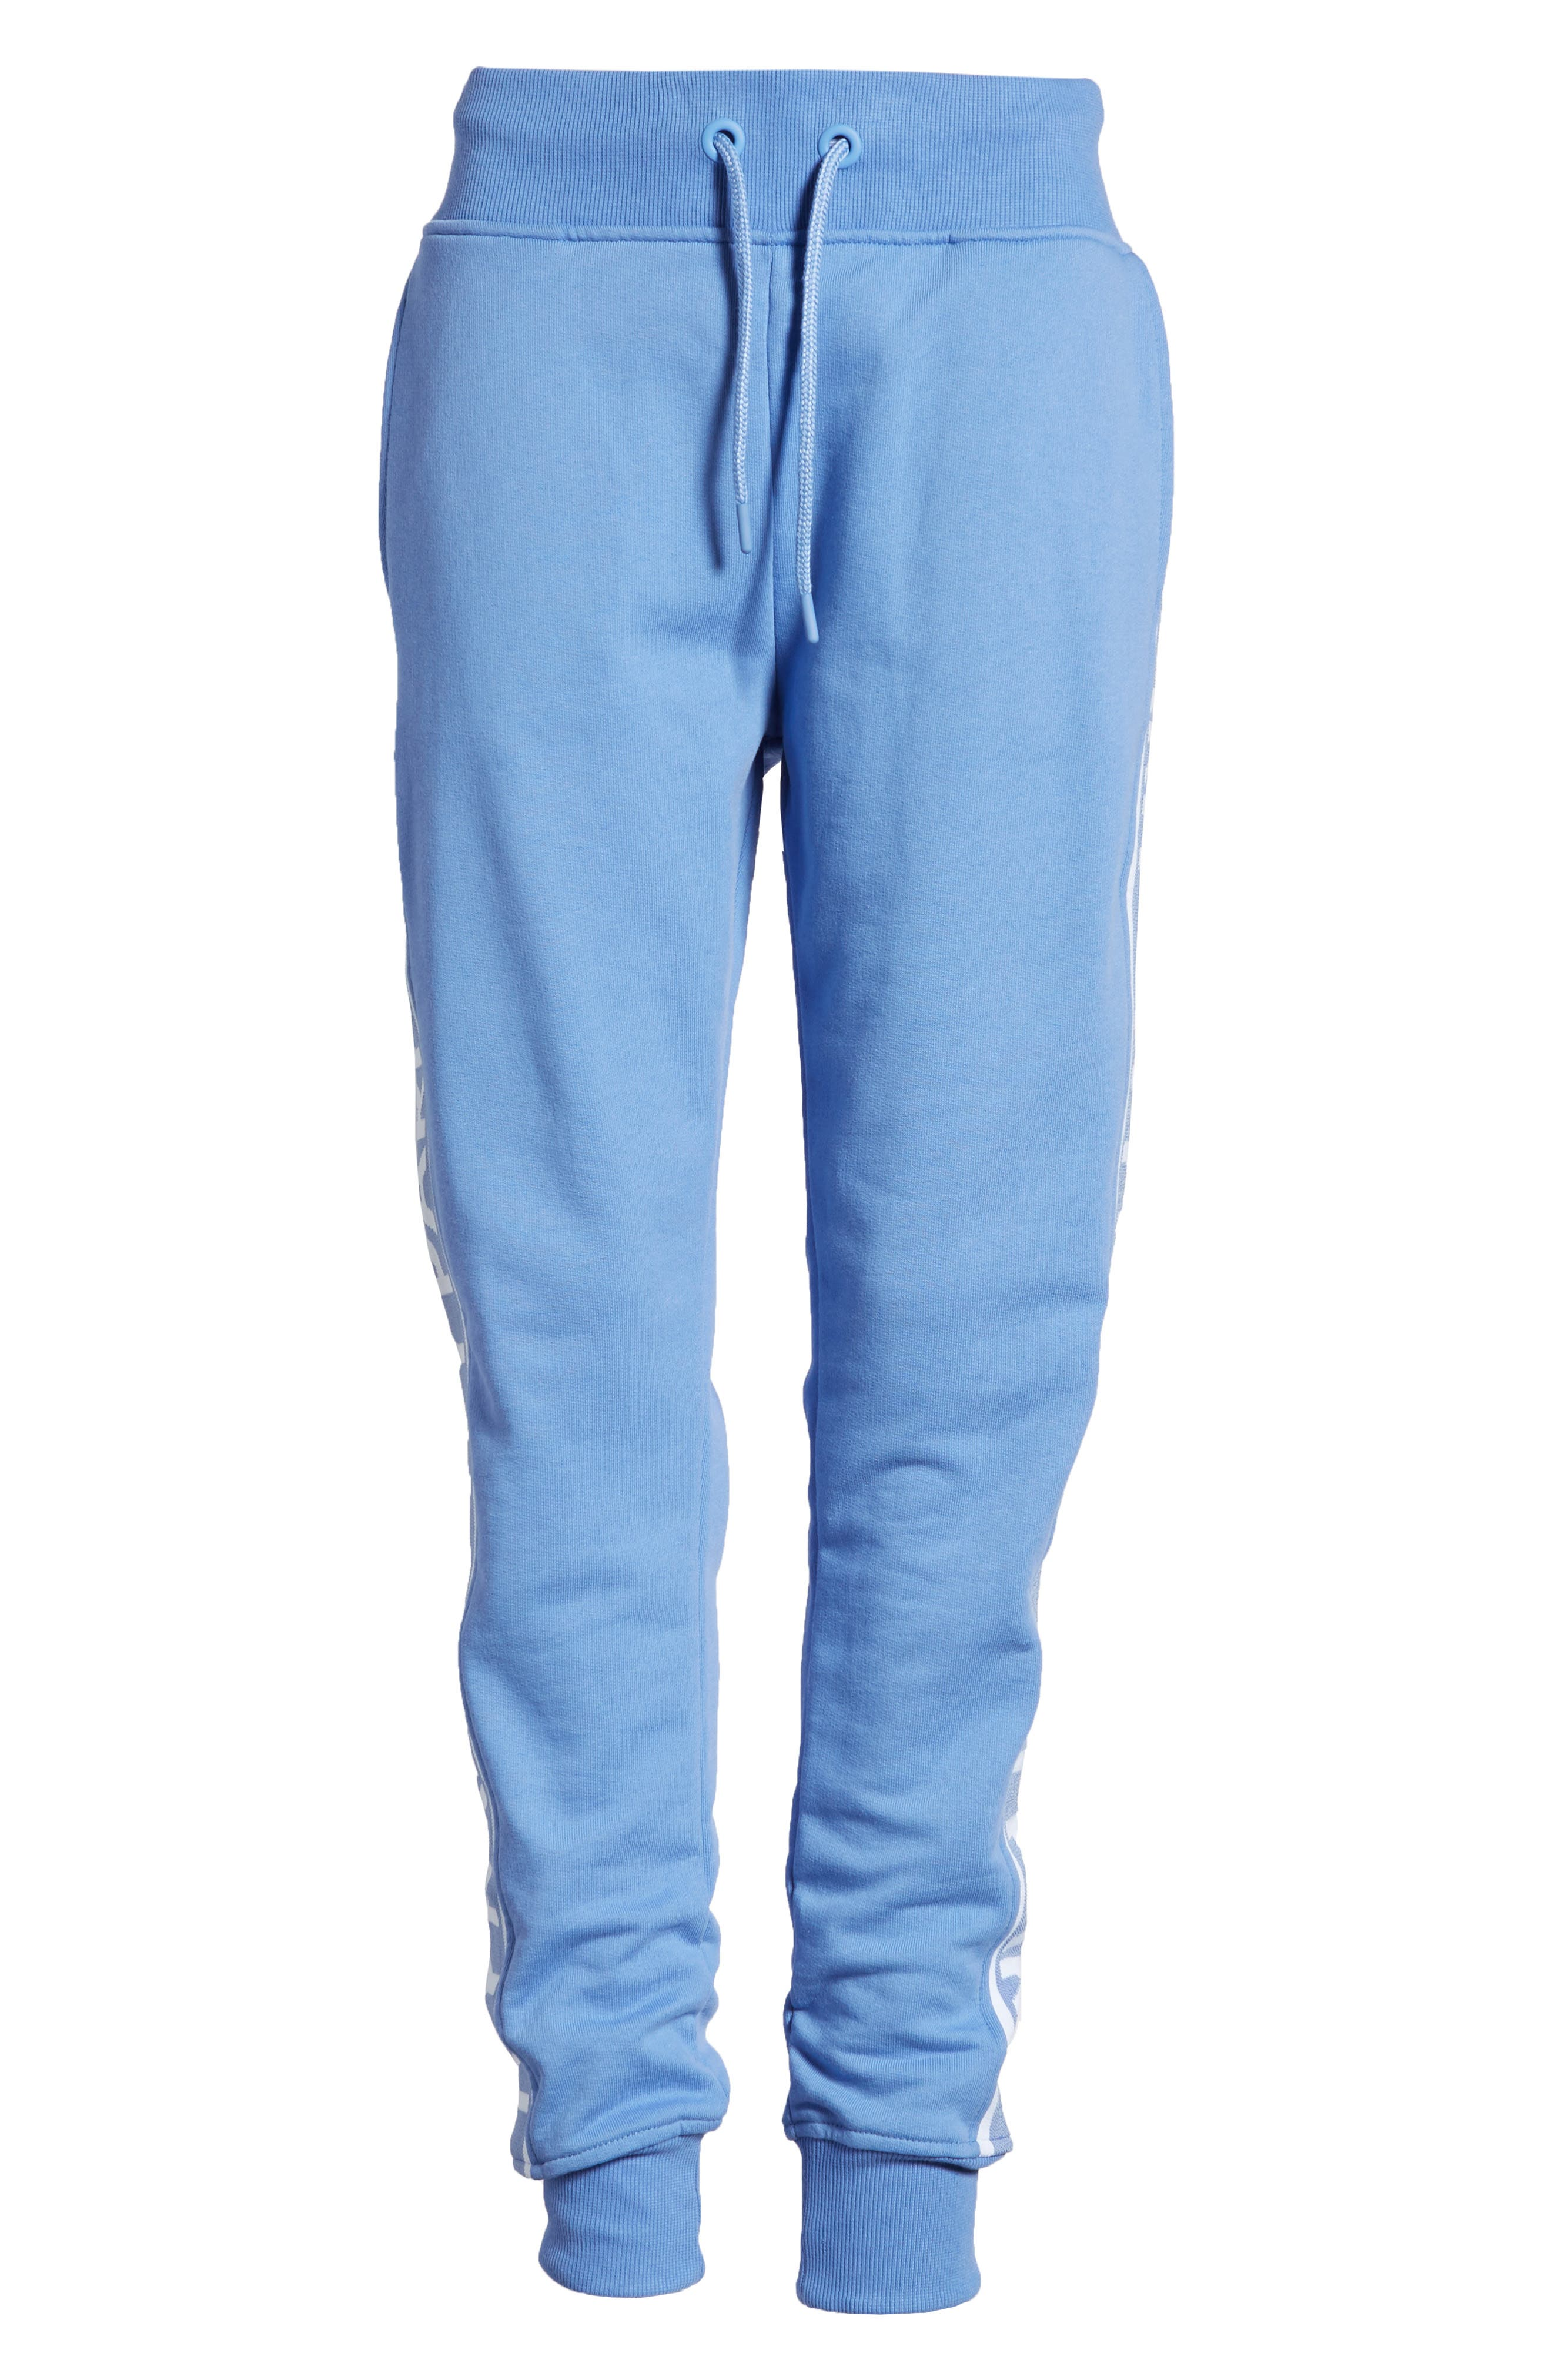 Logo Tape Jogger Pants,                             Alternate thumbnail 7, color,                             WEDGEWOOD BLUE